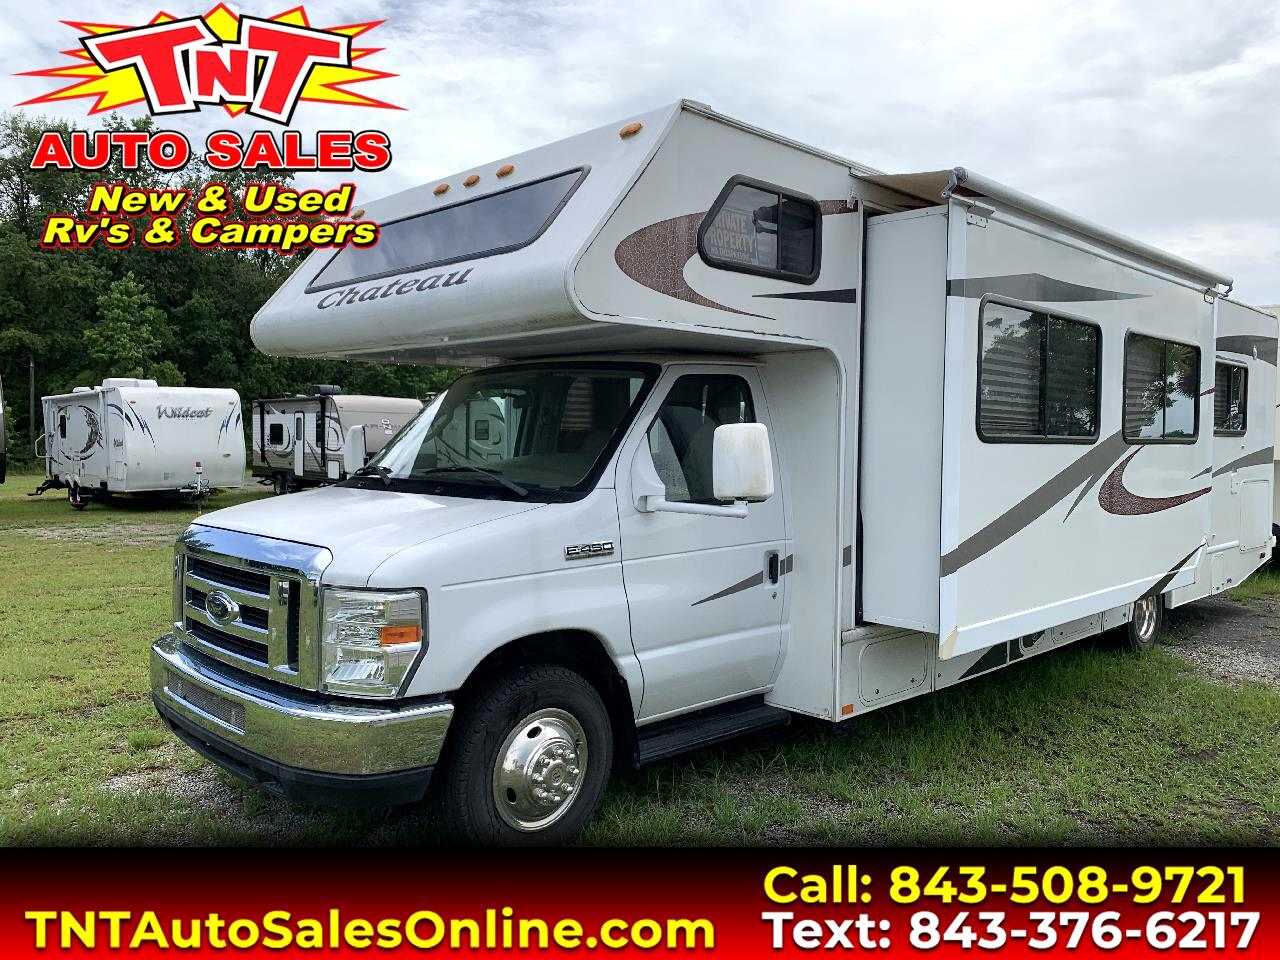 2010 Four Winds Chateau Freedom Elite 31R